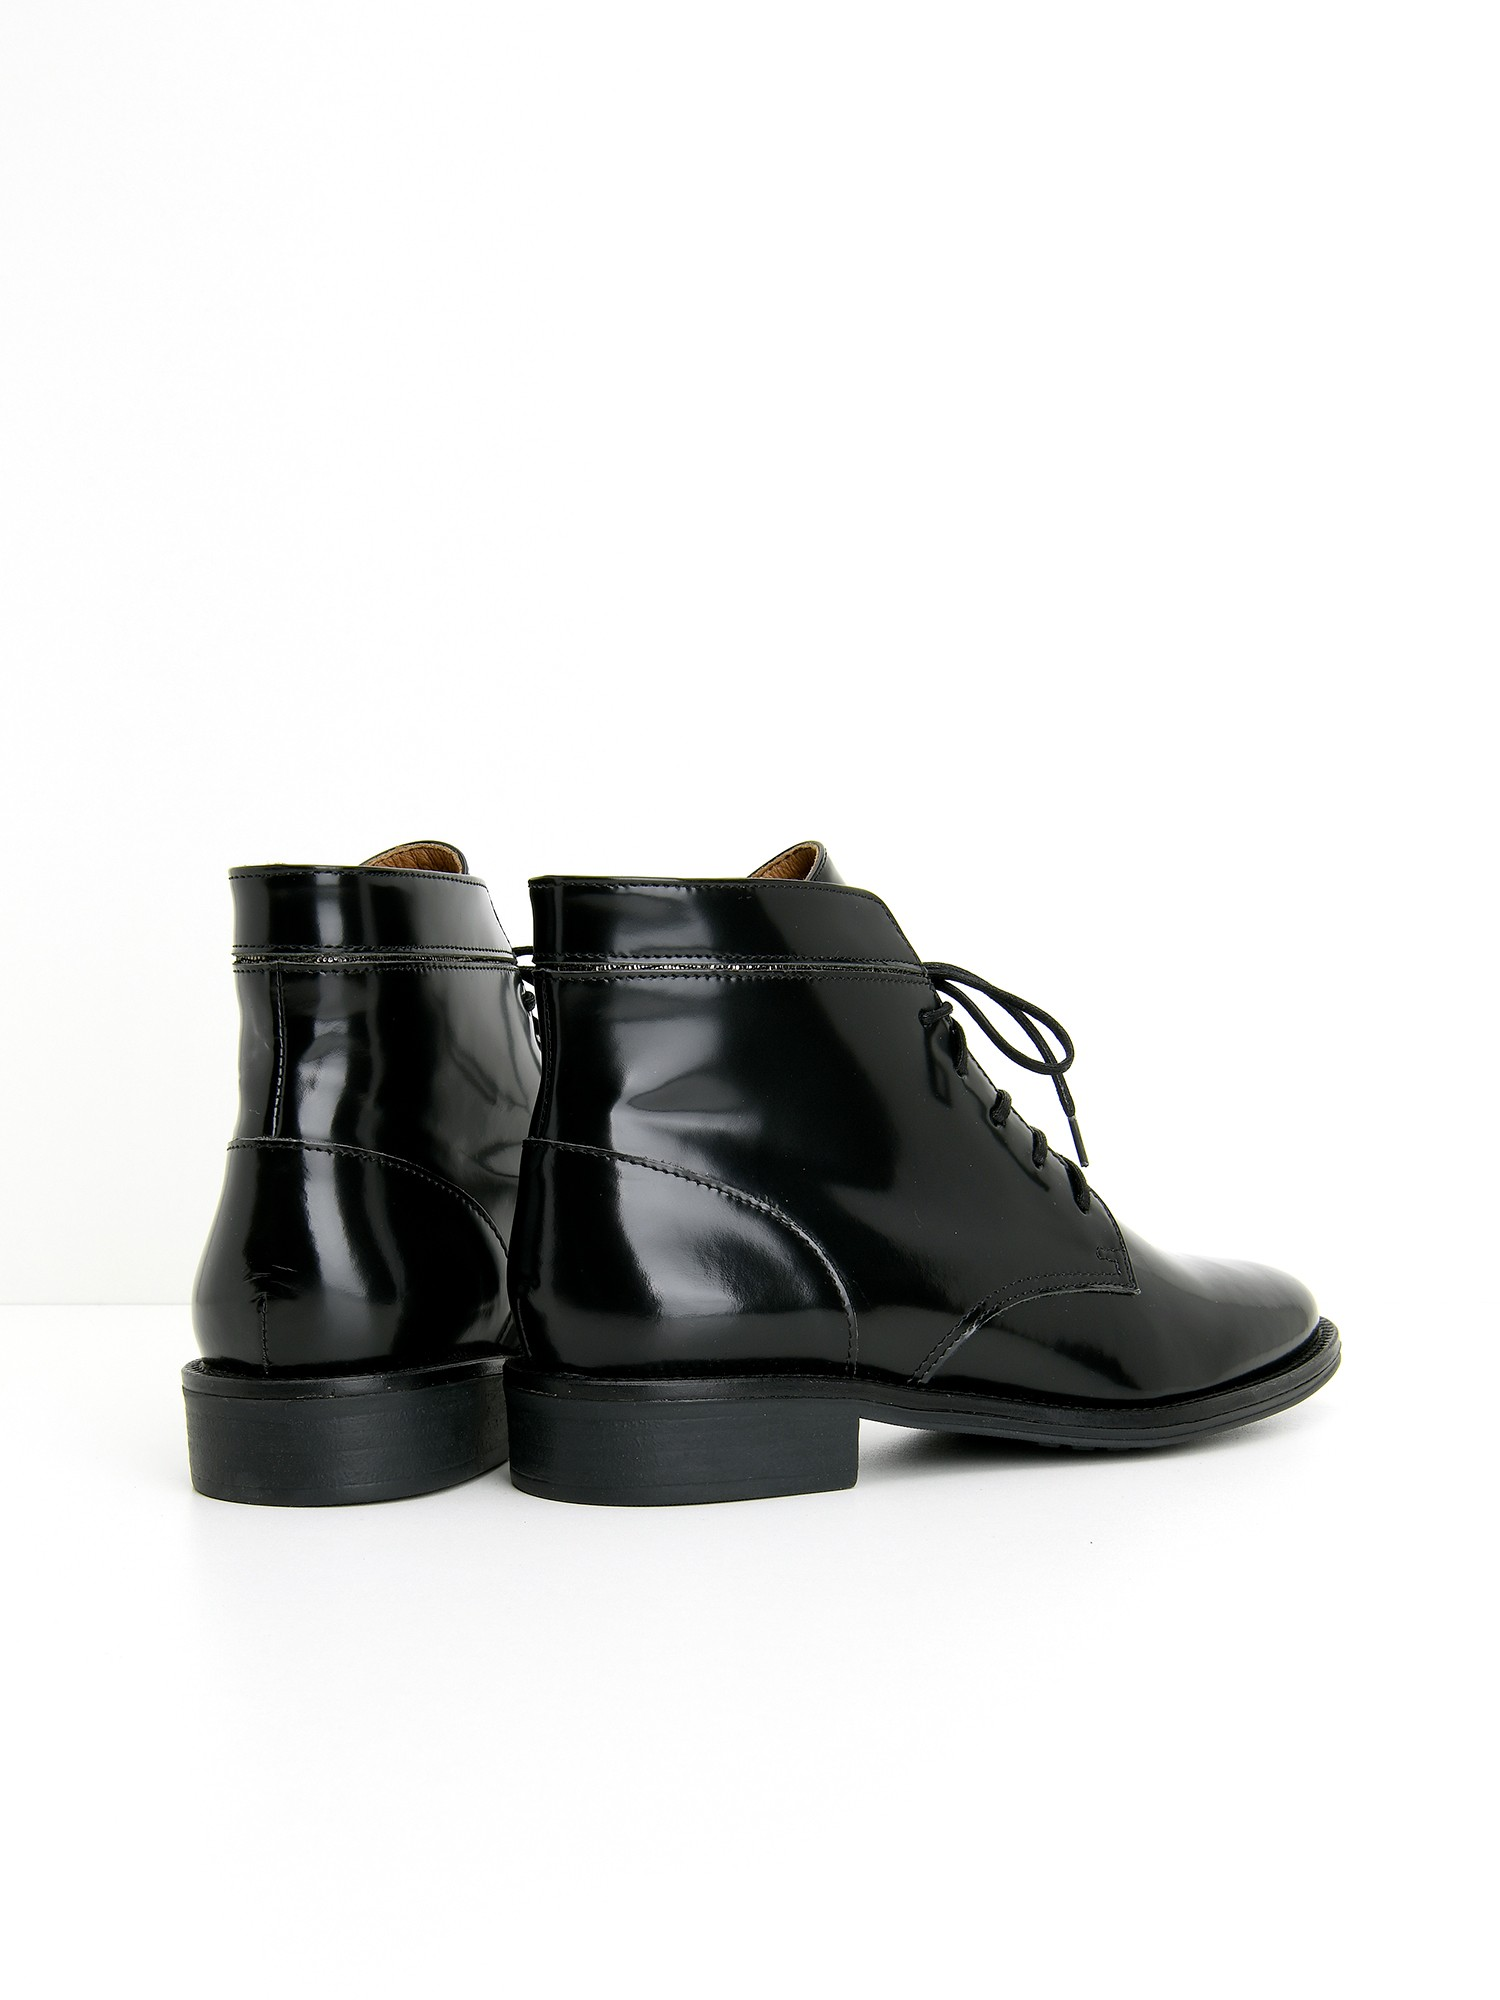 schmoove.fr NEWTON BOOTS - BOX/DIAMOND - BLACK/GRAPHITE